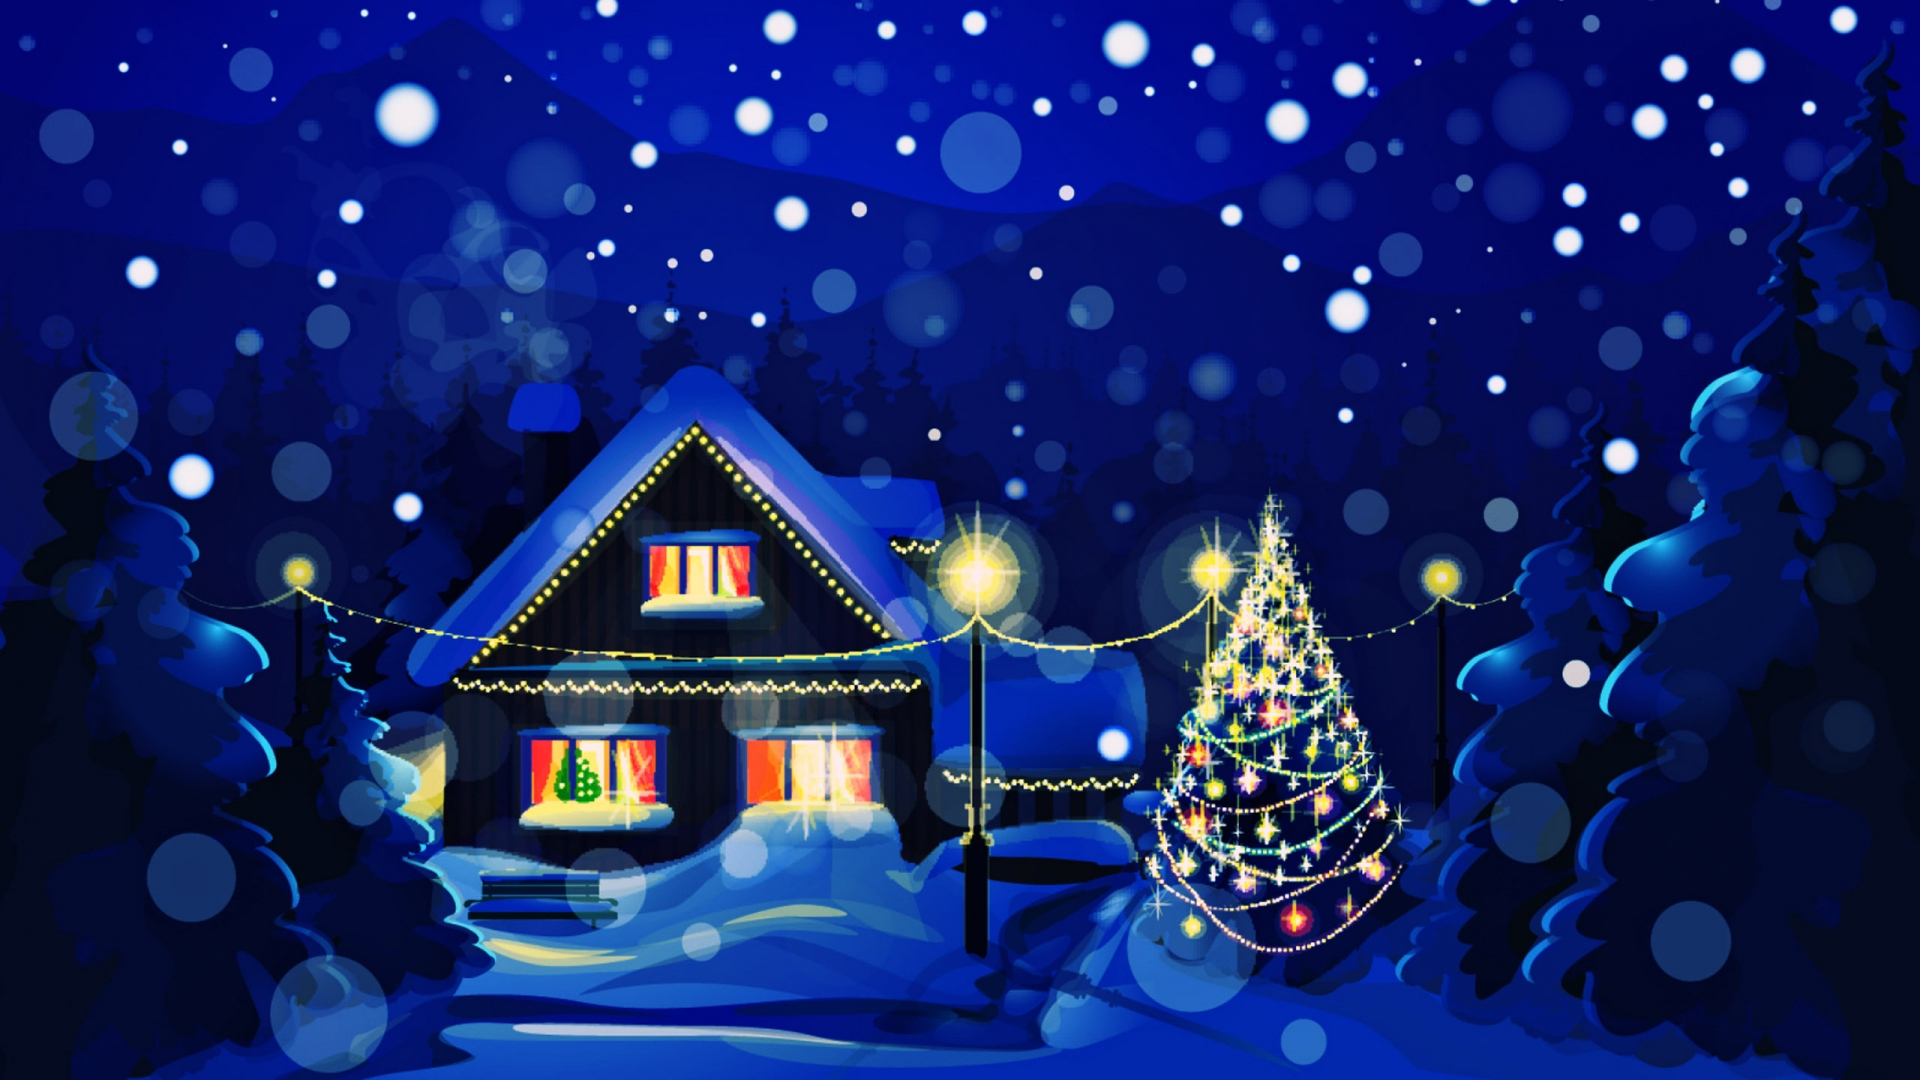 christmas digital art desktop wallpaper 62366